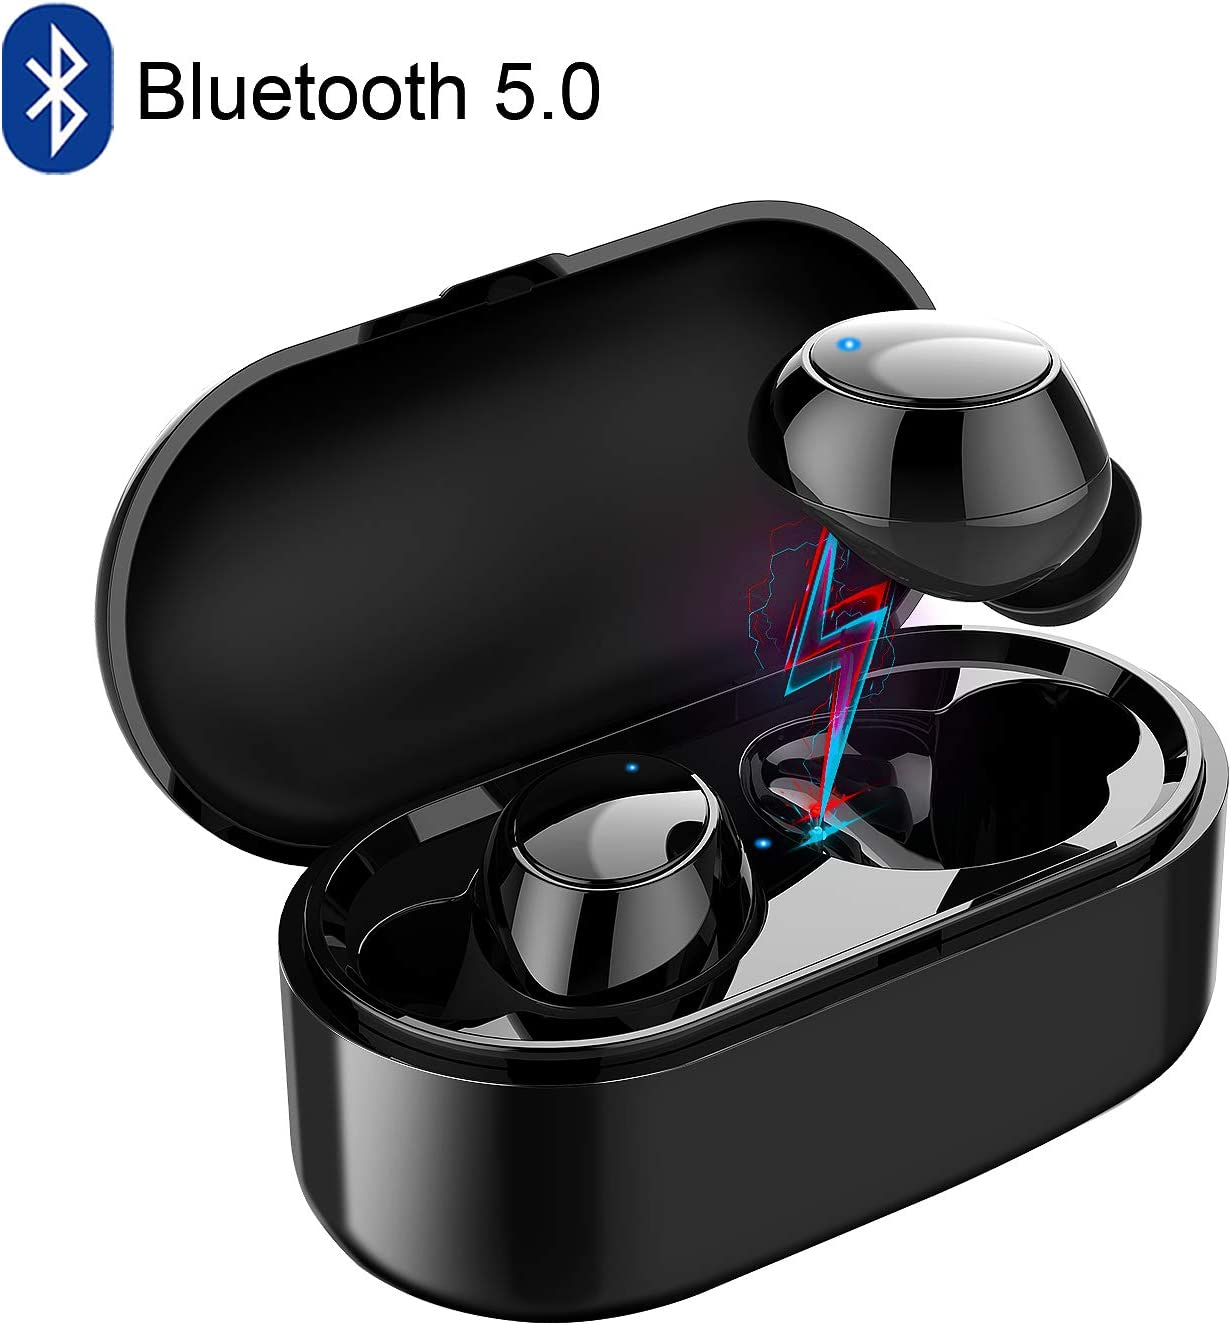 Wireless Earbuds Bluetooth 5.0 Headphones with Microphones Charging Case Waterproof Sport Wireless Earphones Noise Cancelling in-Ear Bluetooth Headsets Compatible with Android iOS iPhone Samsung Black